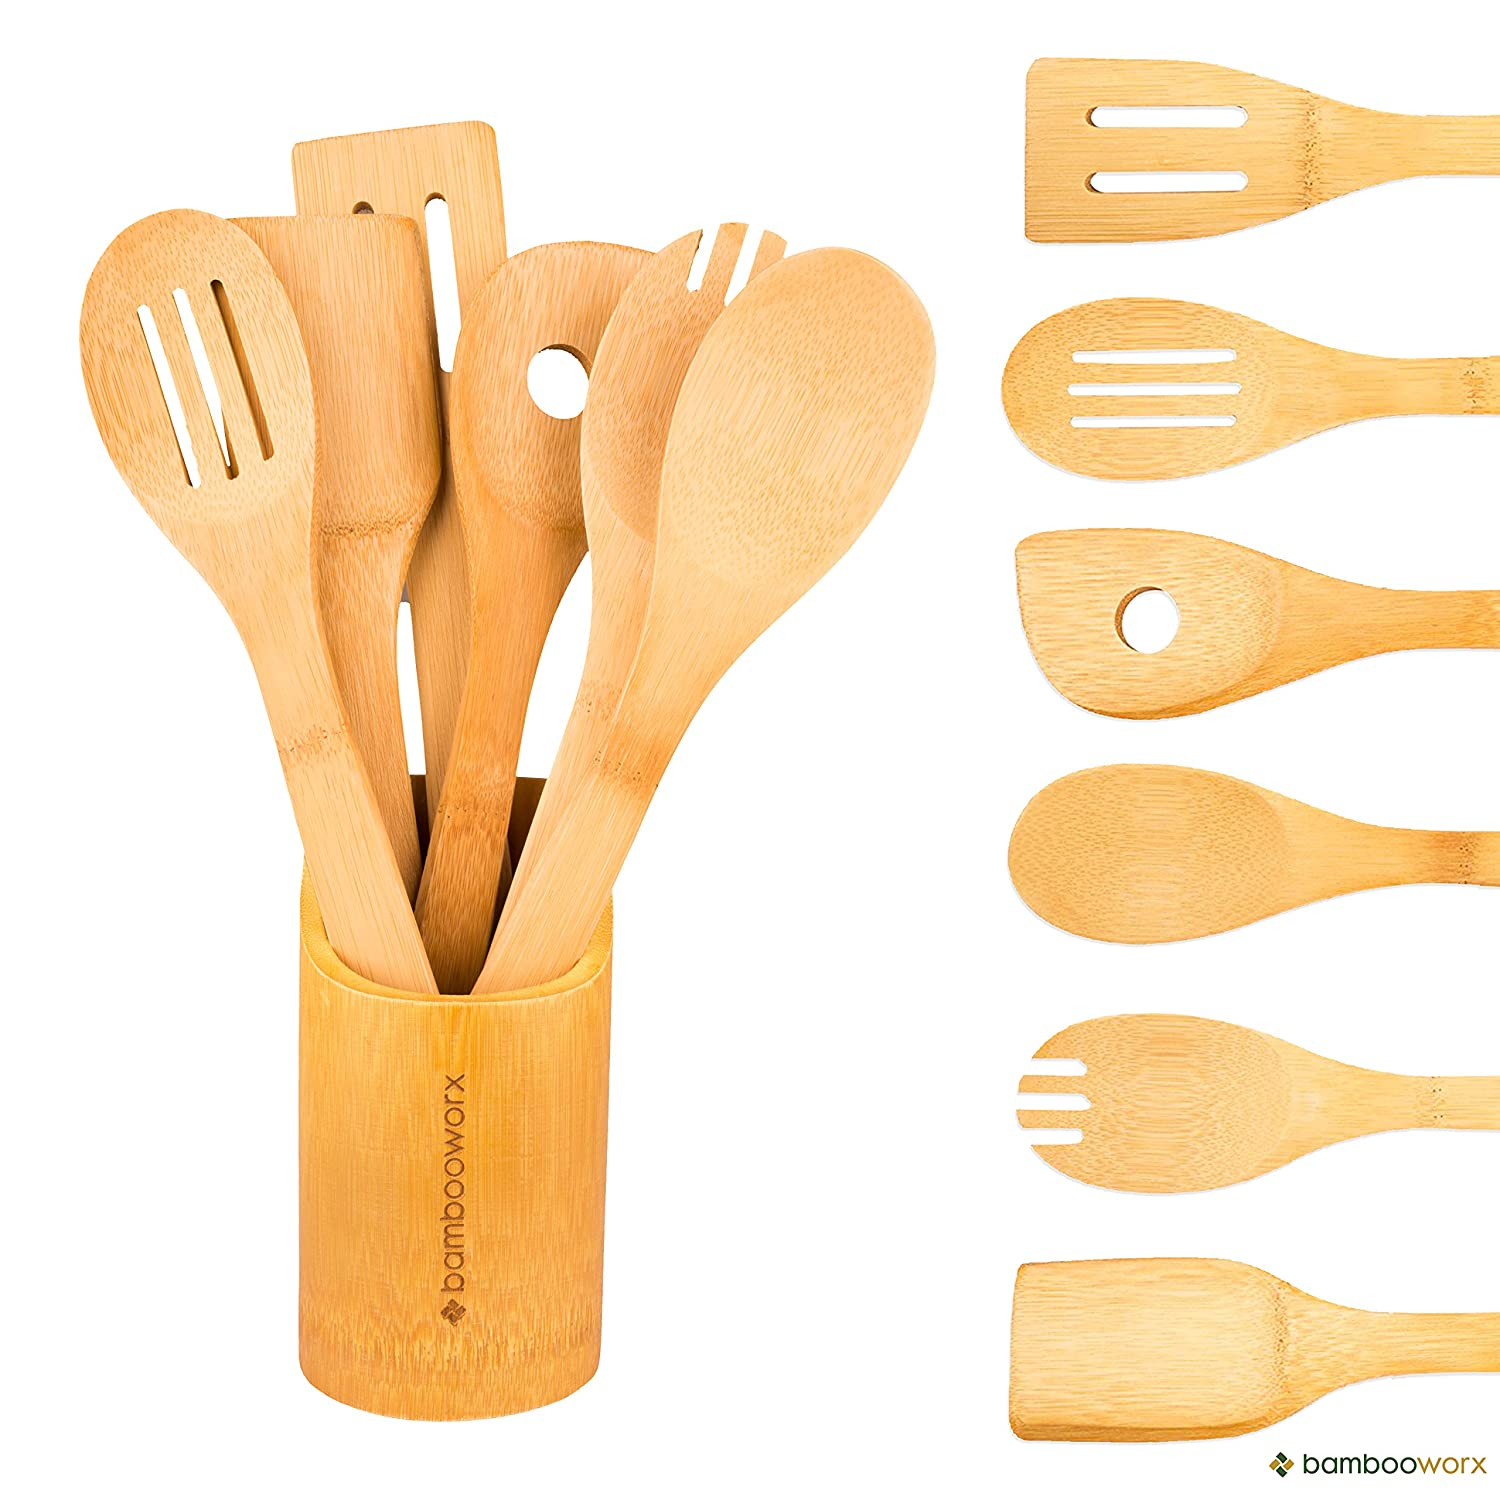 Amazon.com: BambooWorx Bamboo Cooking Utensils Set  6 Pieces + Holder,  Wooden Spoons U0026 Spatulas, Kitchen Utensils, ♻ All Natural Bamboo.: Home U0026  Kitchen